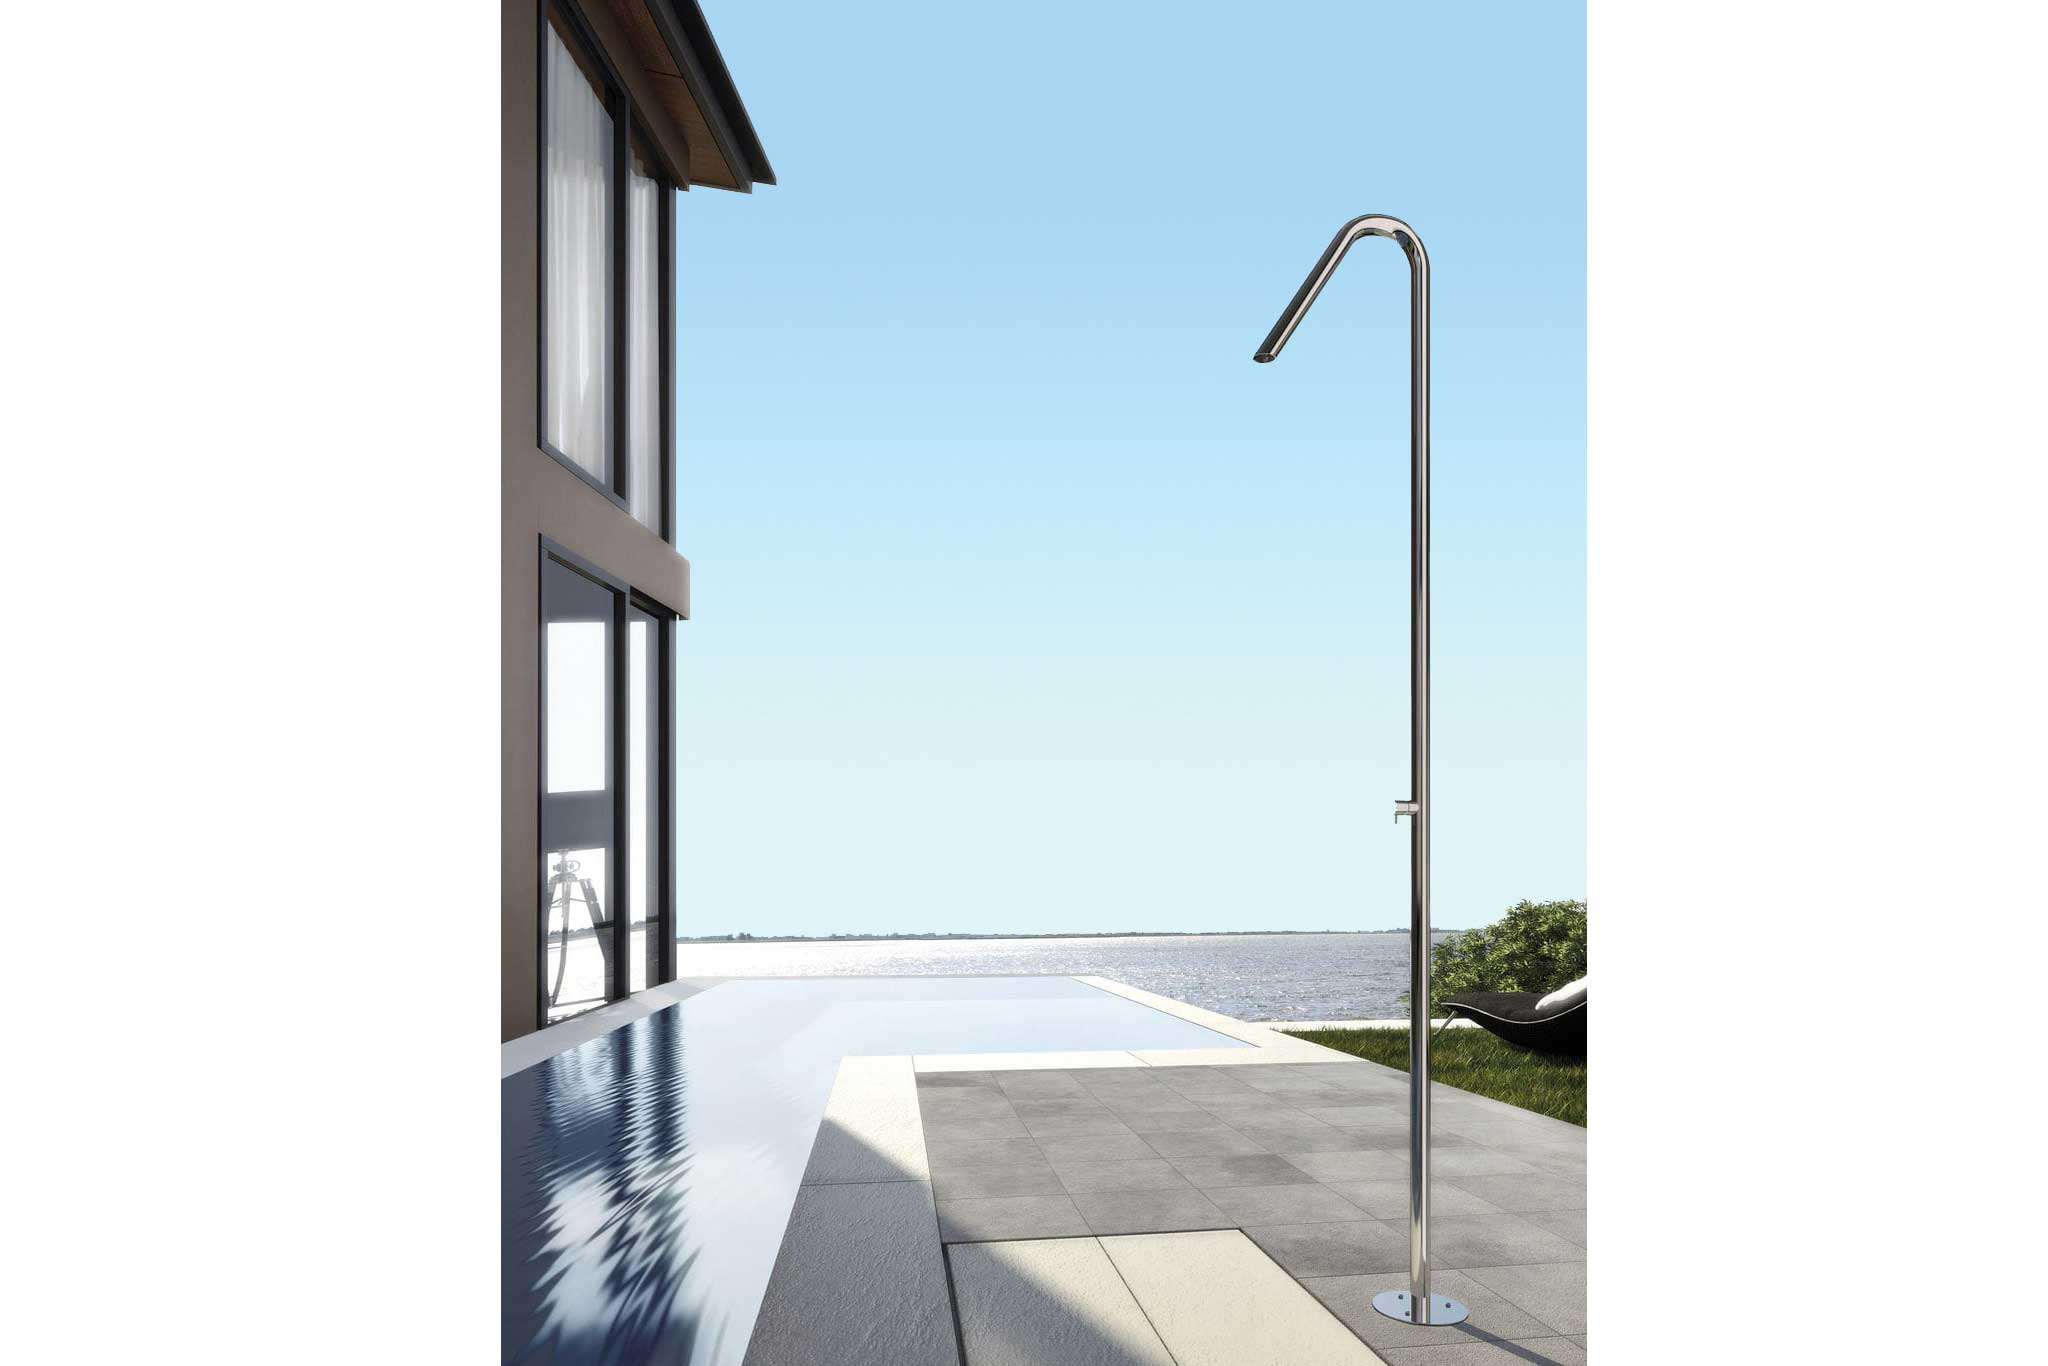 Cool Shower Outdoor Duschen Fur Zuhause Falstaff Living